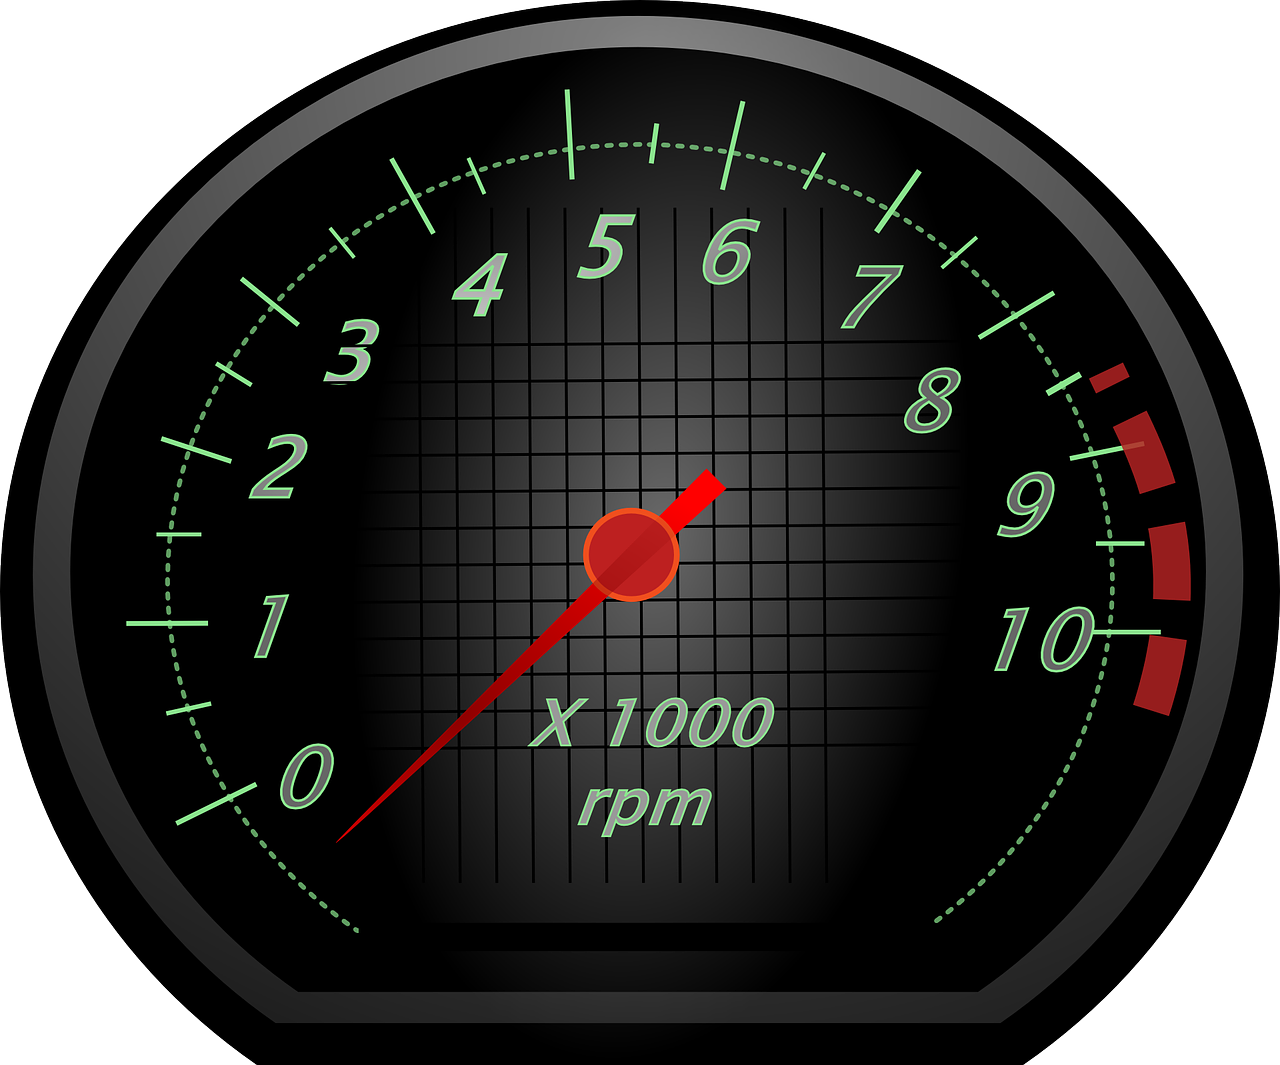 Rpm racing revolution counter. Fast clipart odometer